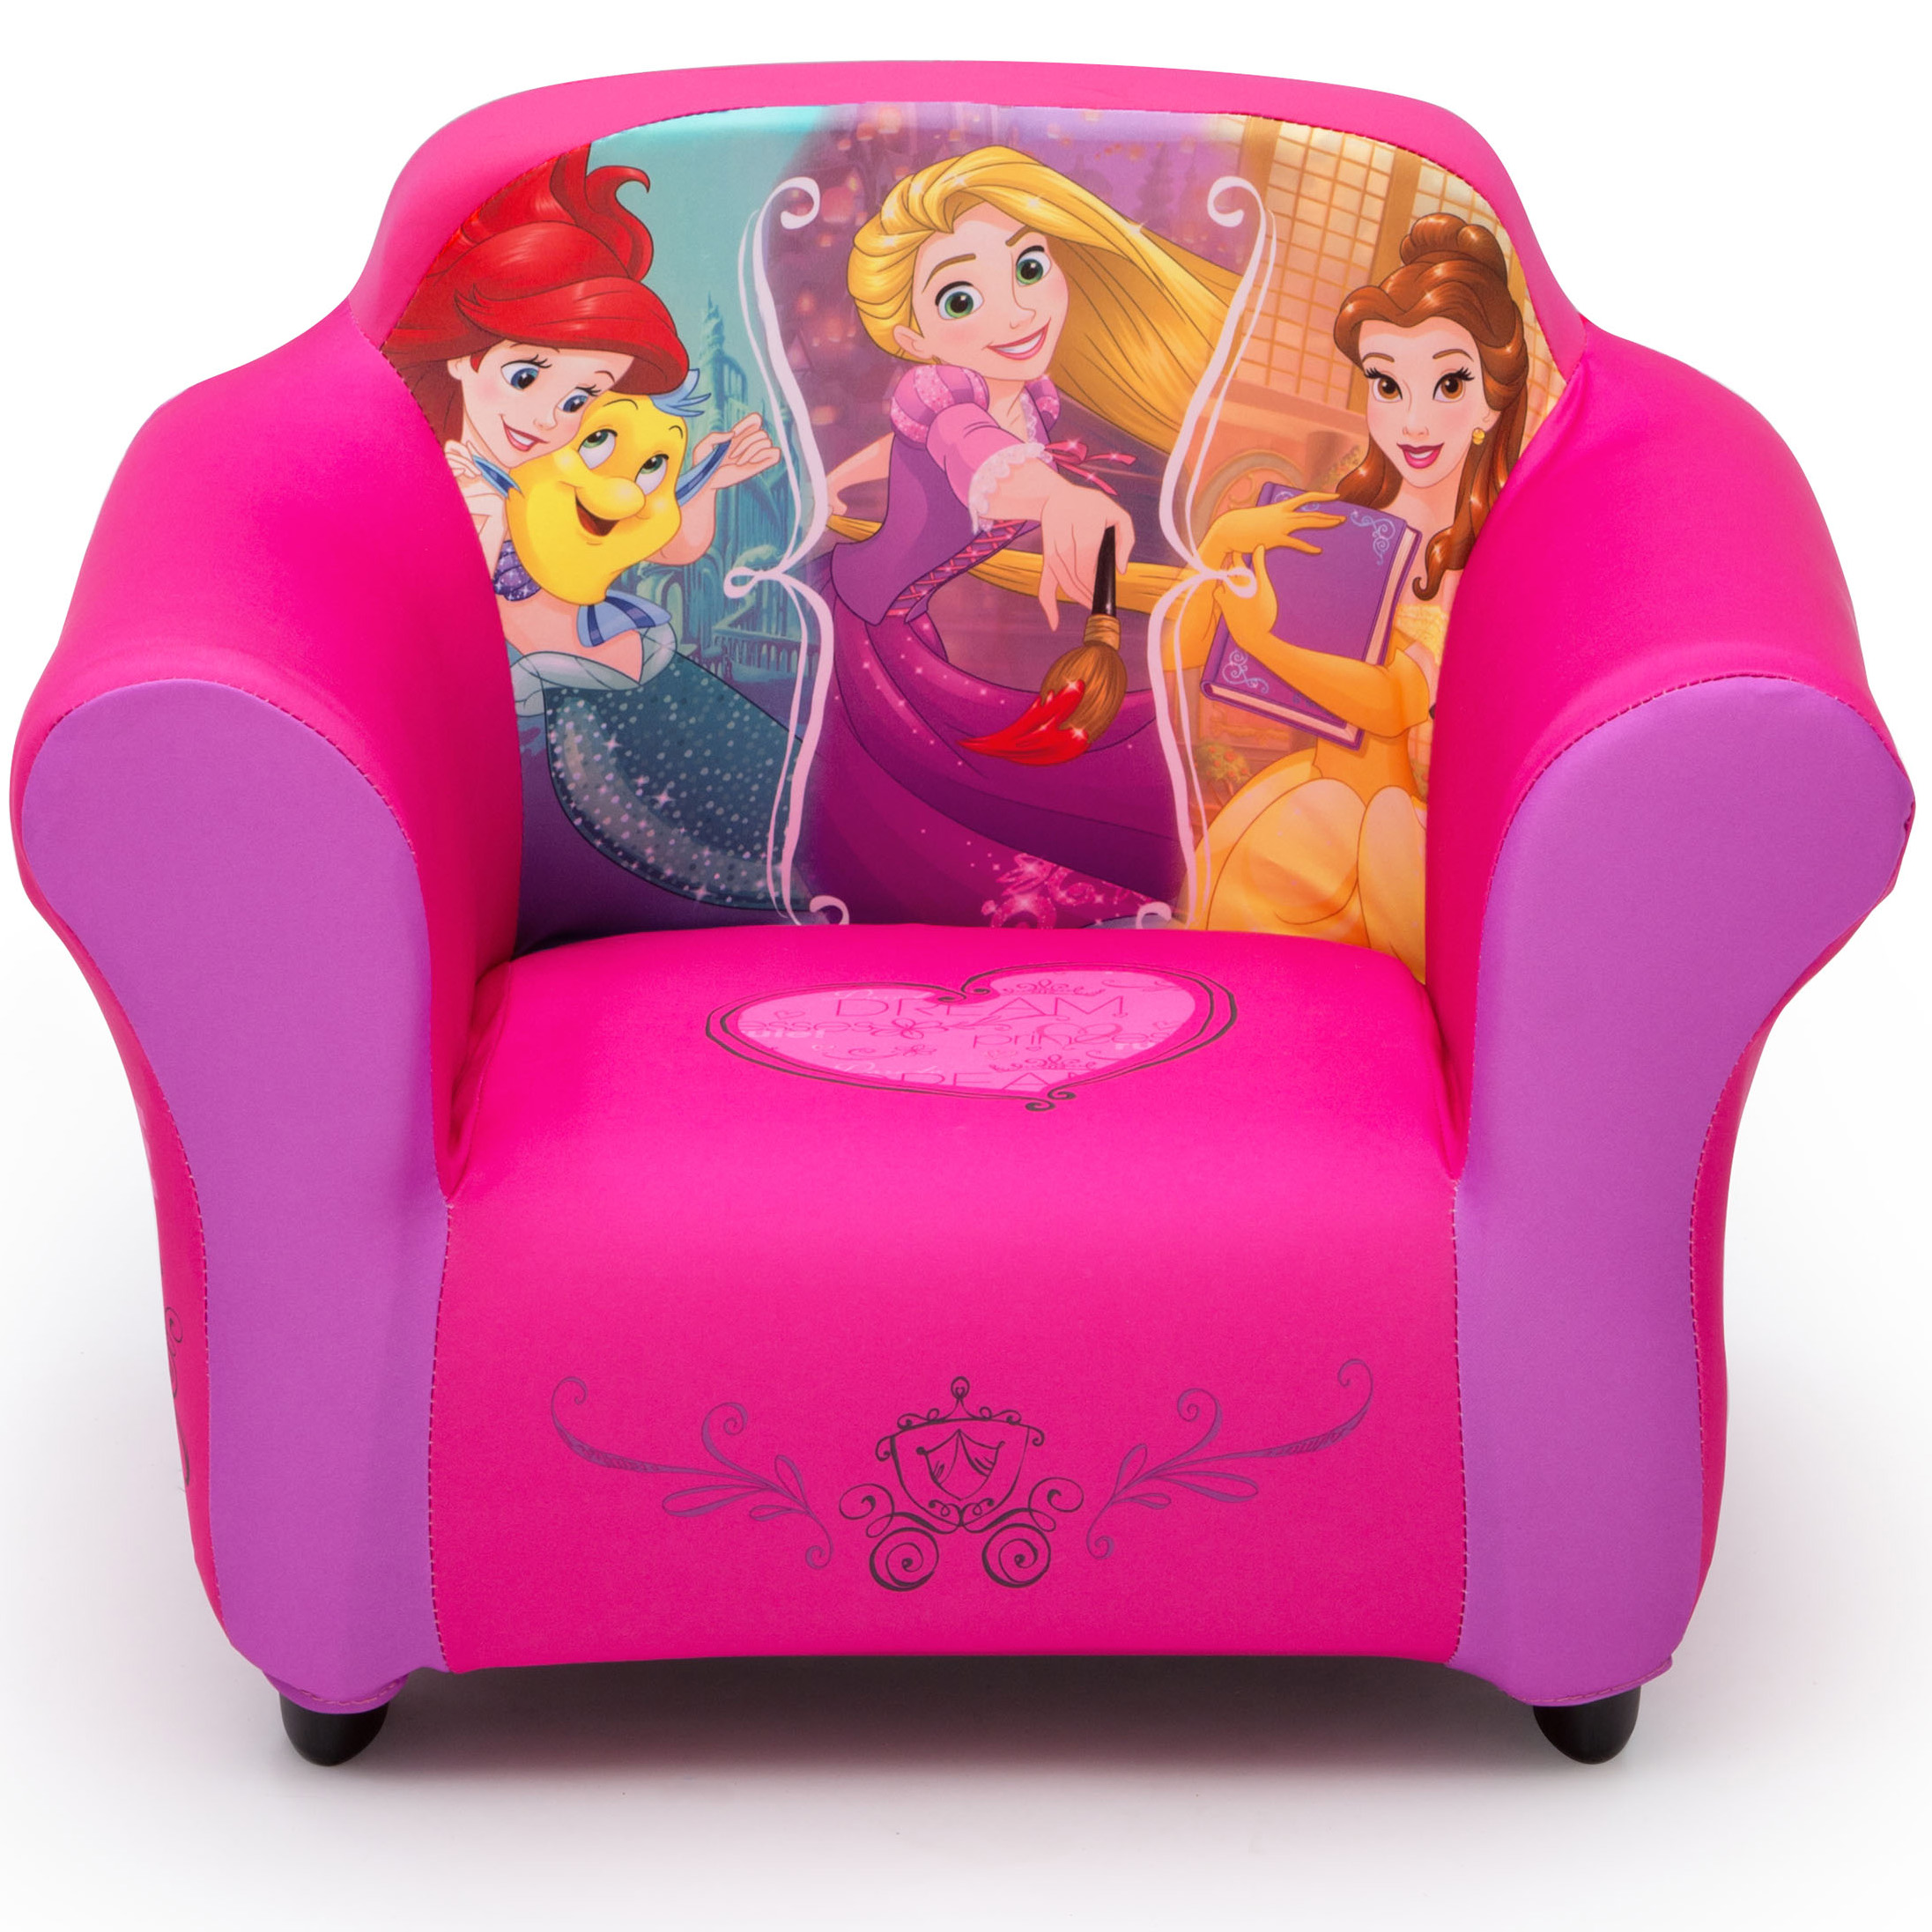 Disney Princess Plastic Frame Upholstered Chair